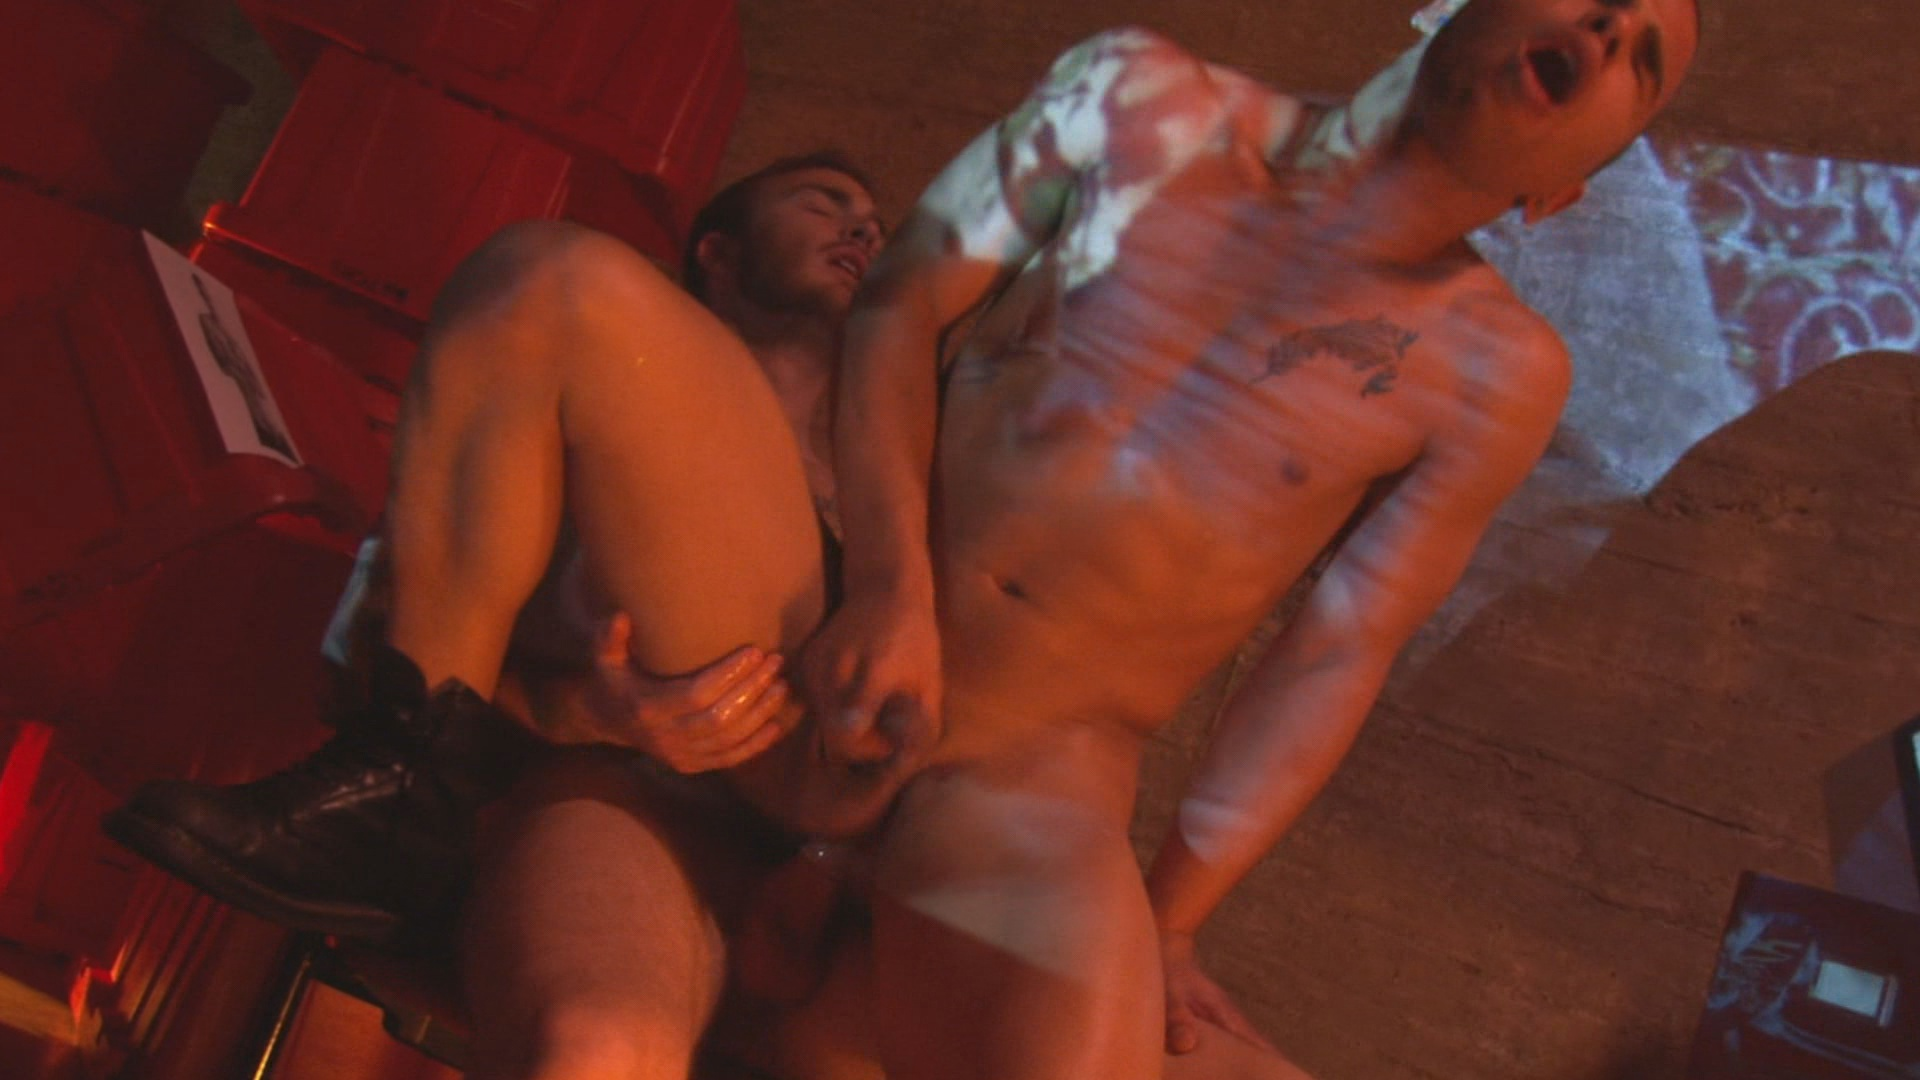 Addict: Addicted To Lust Xvideo gay